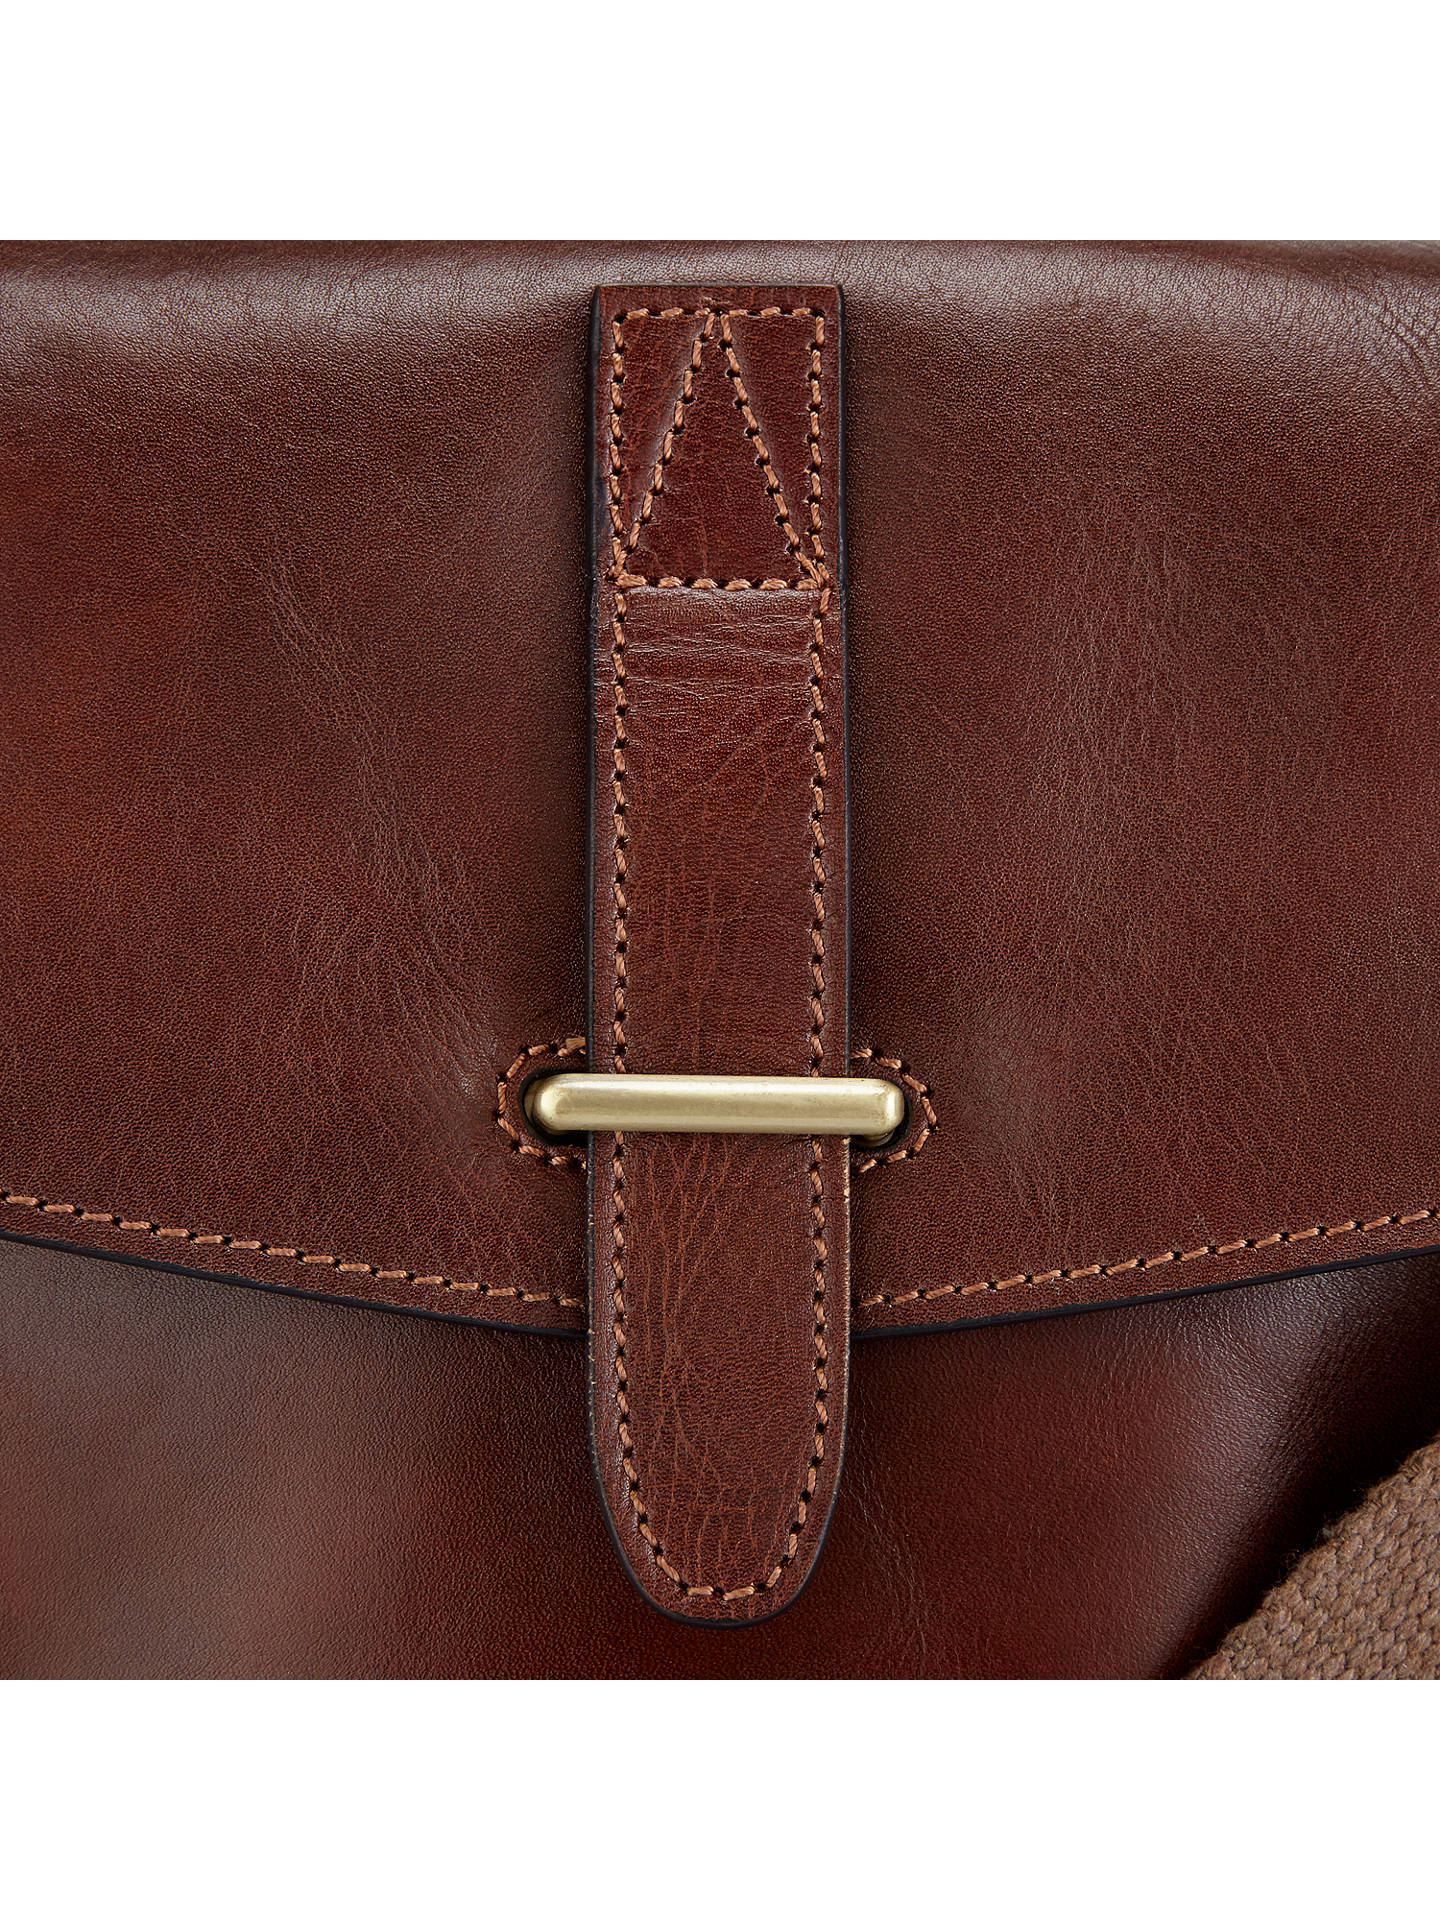 c4d2110d15d8 ... Buy John Lewis   Partners Made in Italy Leather Reporter Bag